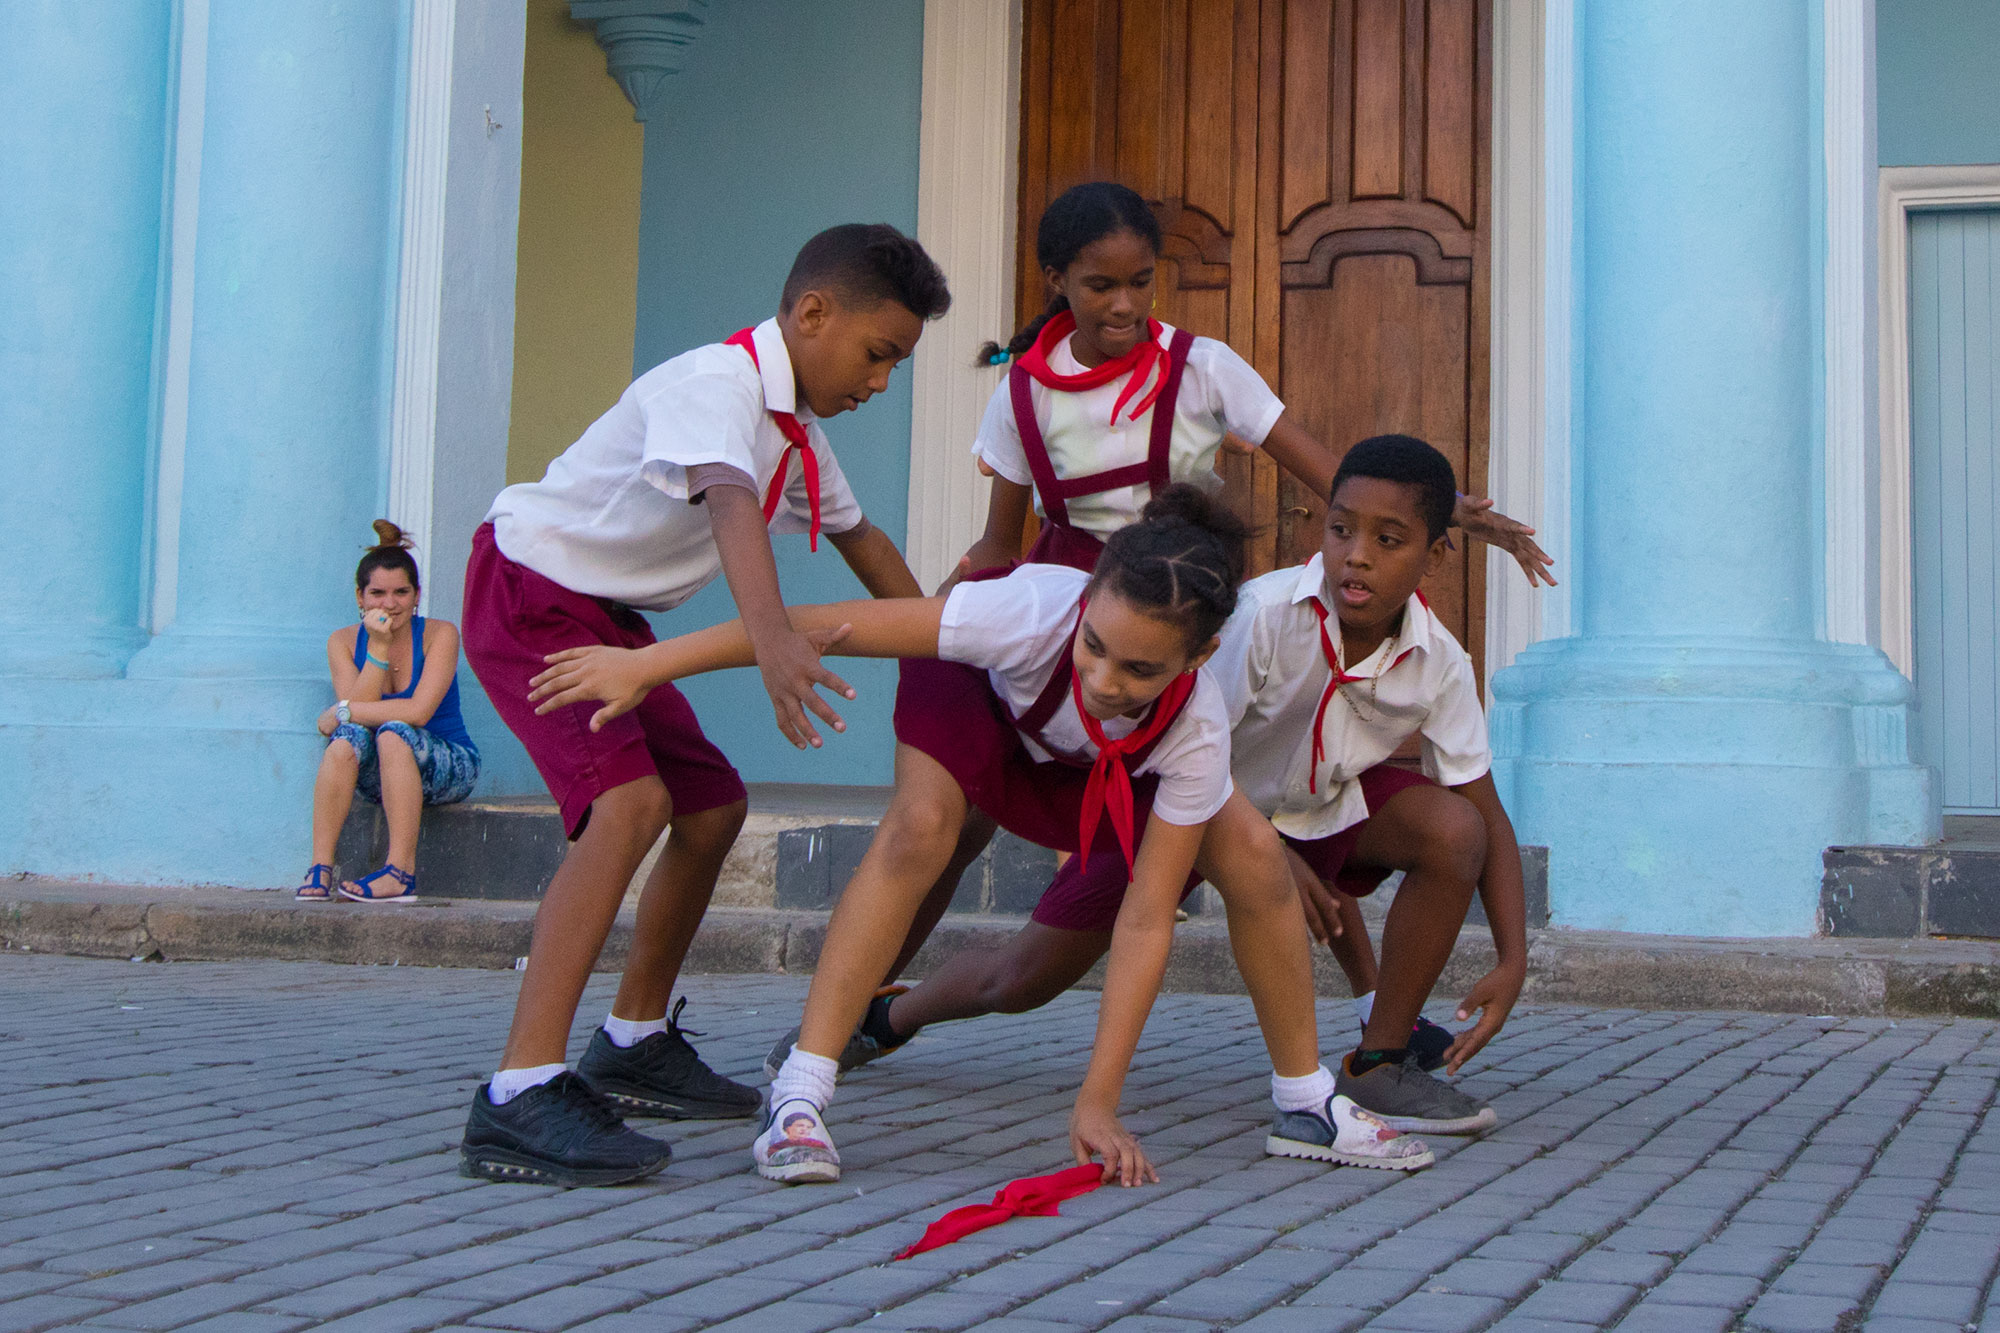 Schoolchildren play the game of Pañoleta in Havana, Cuba